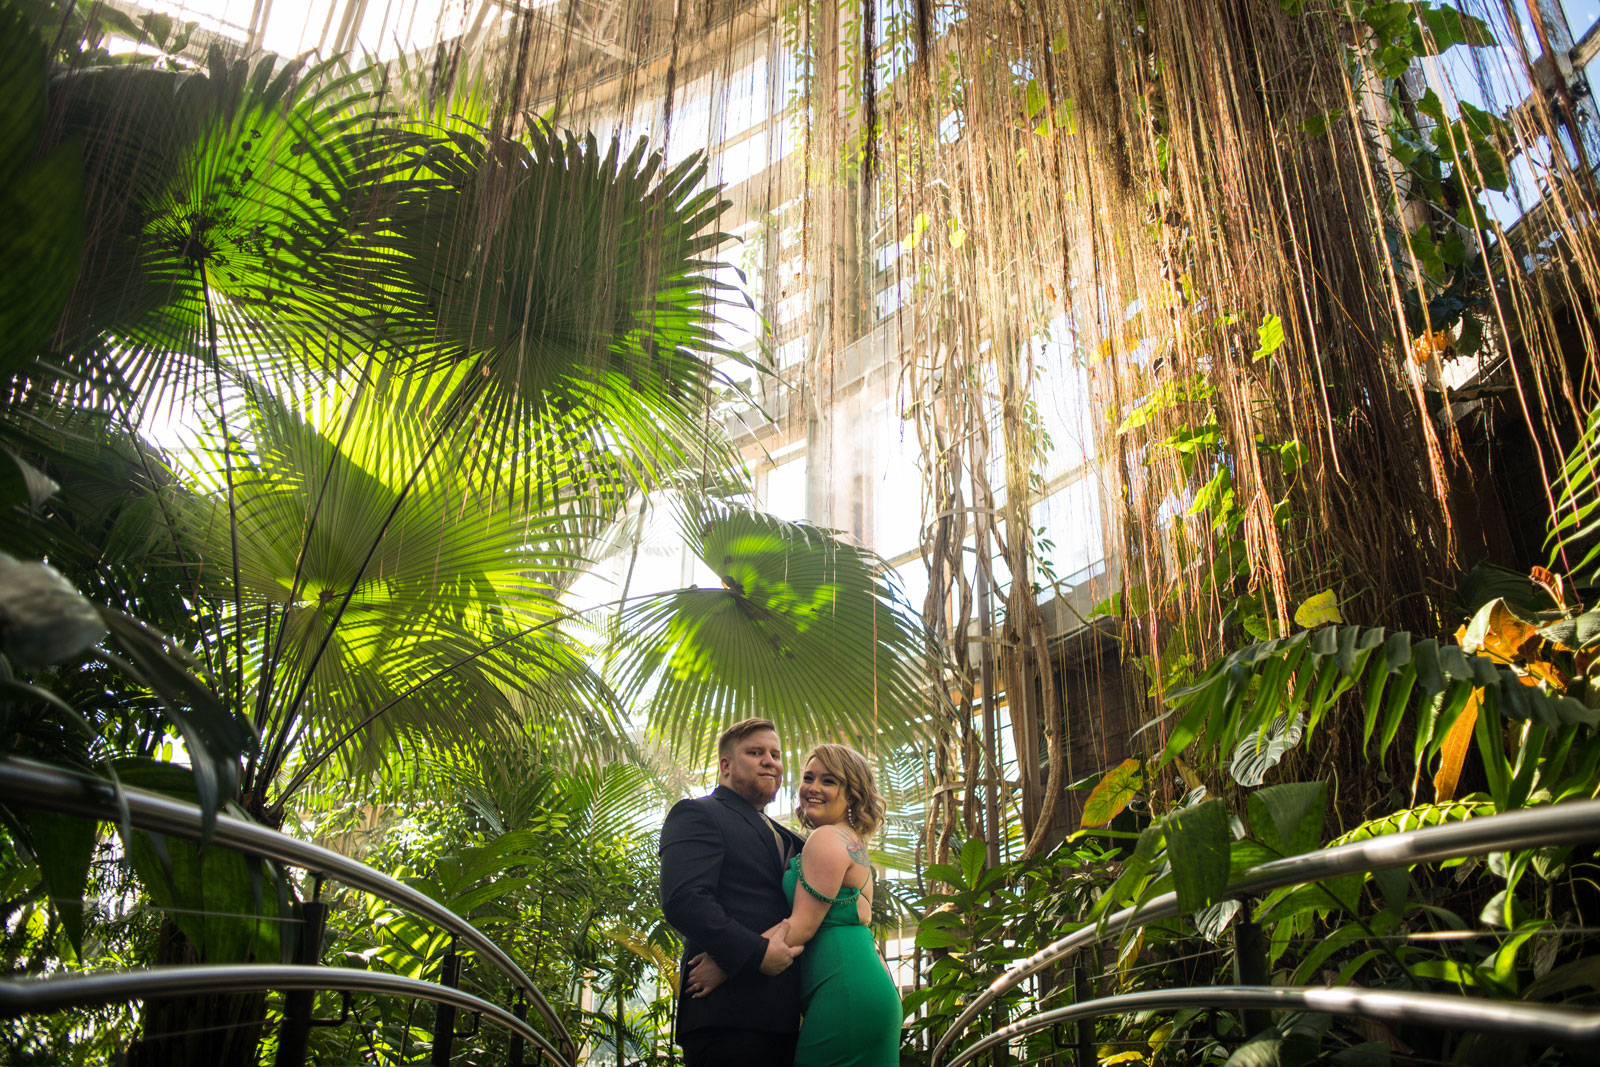 Atlanta Botanical Gardens portrait session for married couple in formal attire